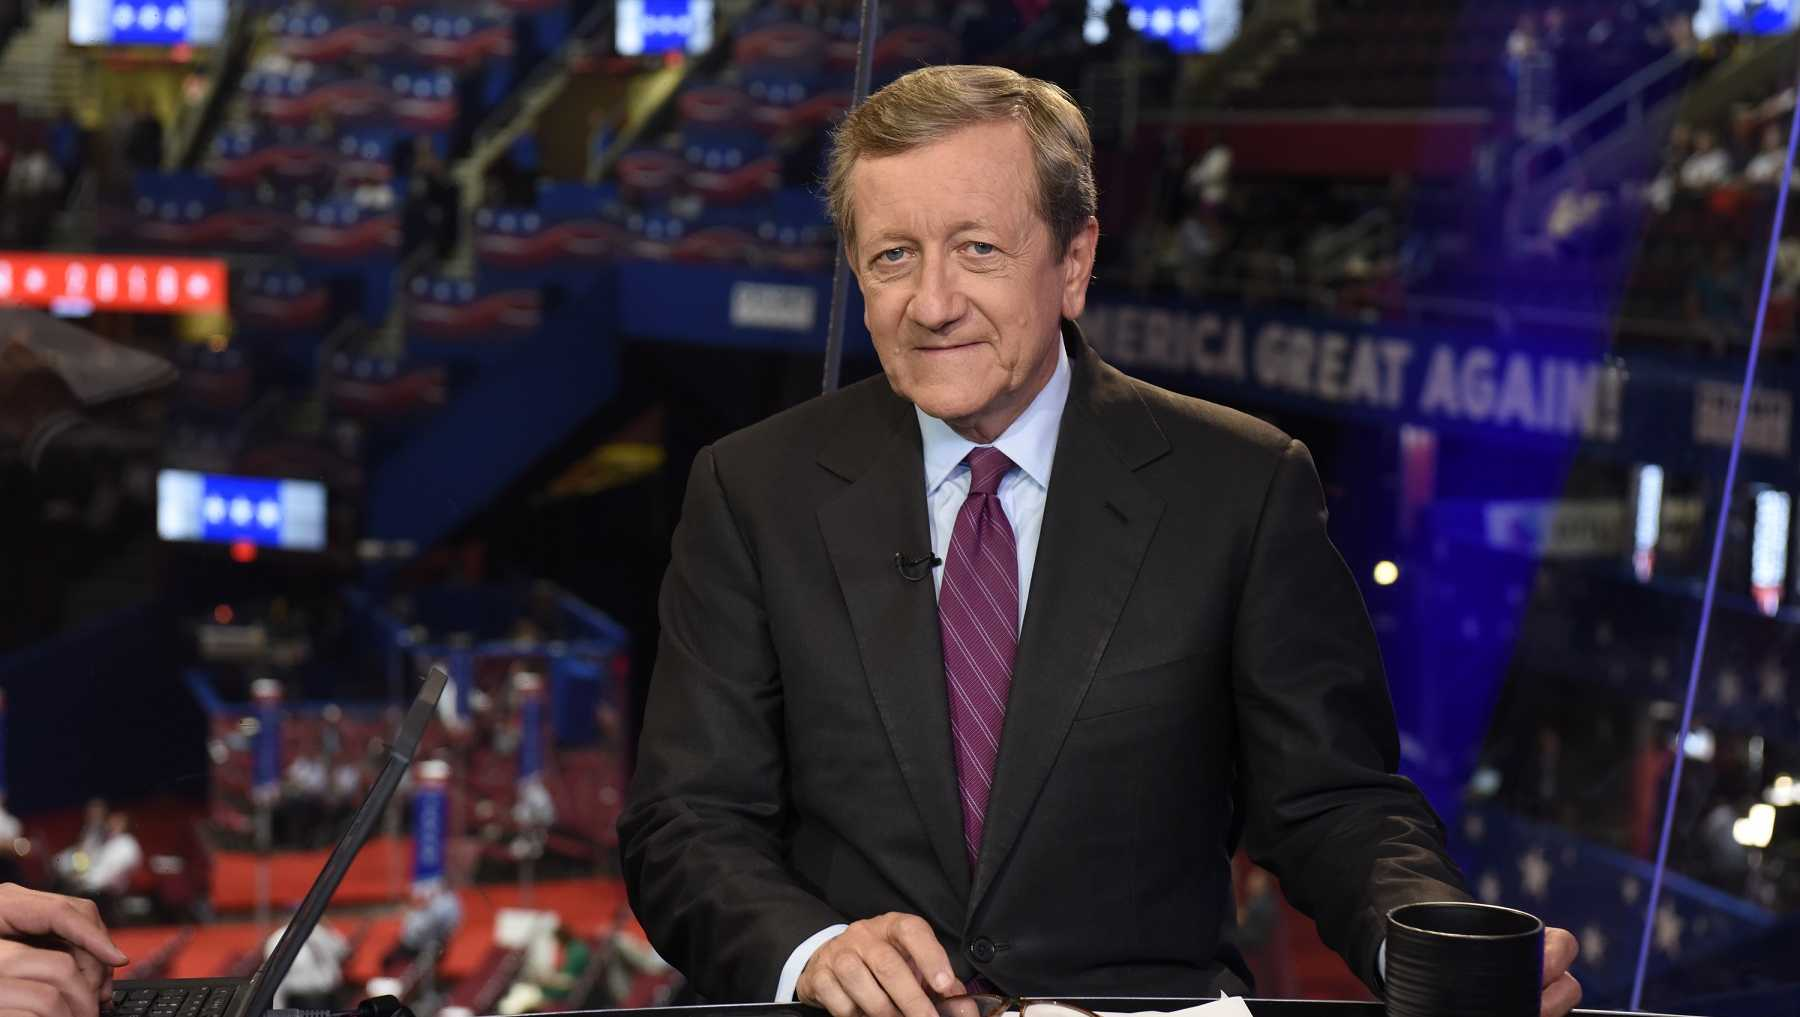 Brian Ross at the 2016 Republican National Convention in Cleveland, Ohio.